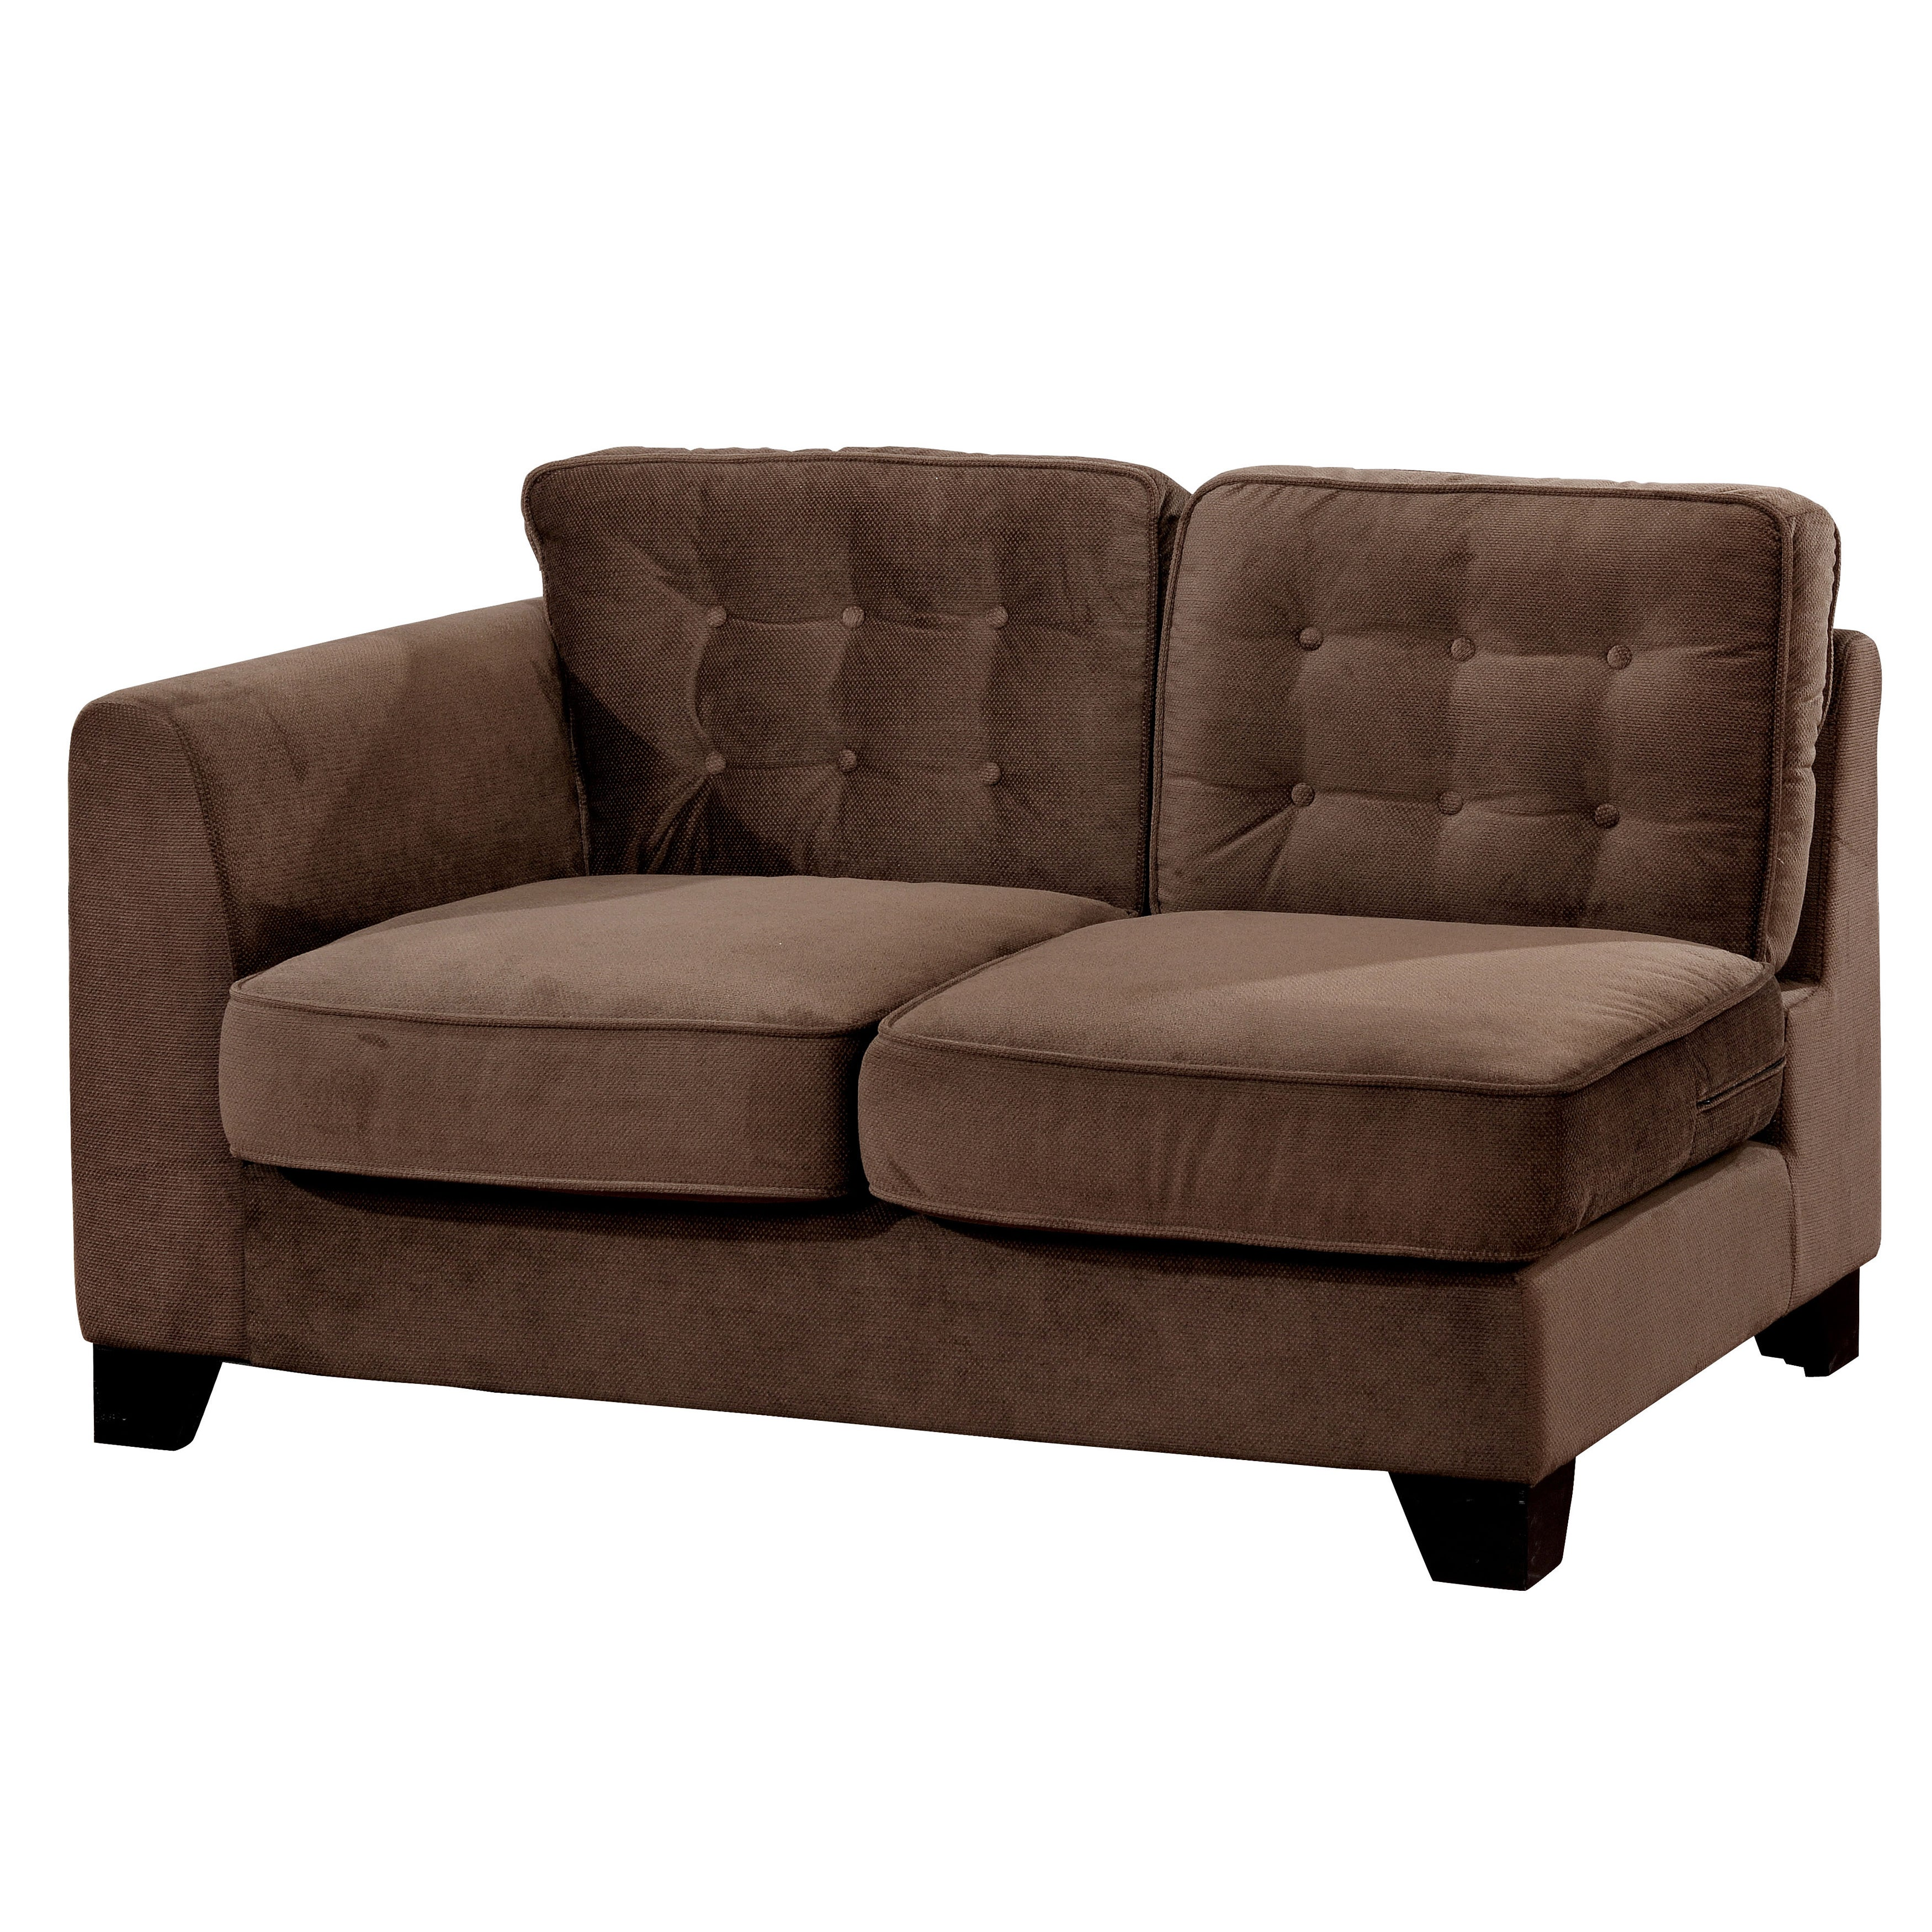 Higgins Contemporary Brown Tufted Sofa By Foa